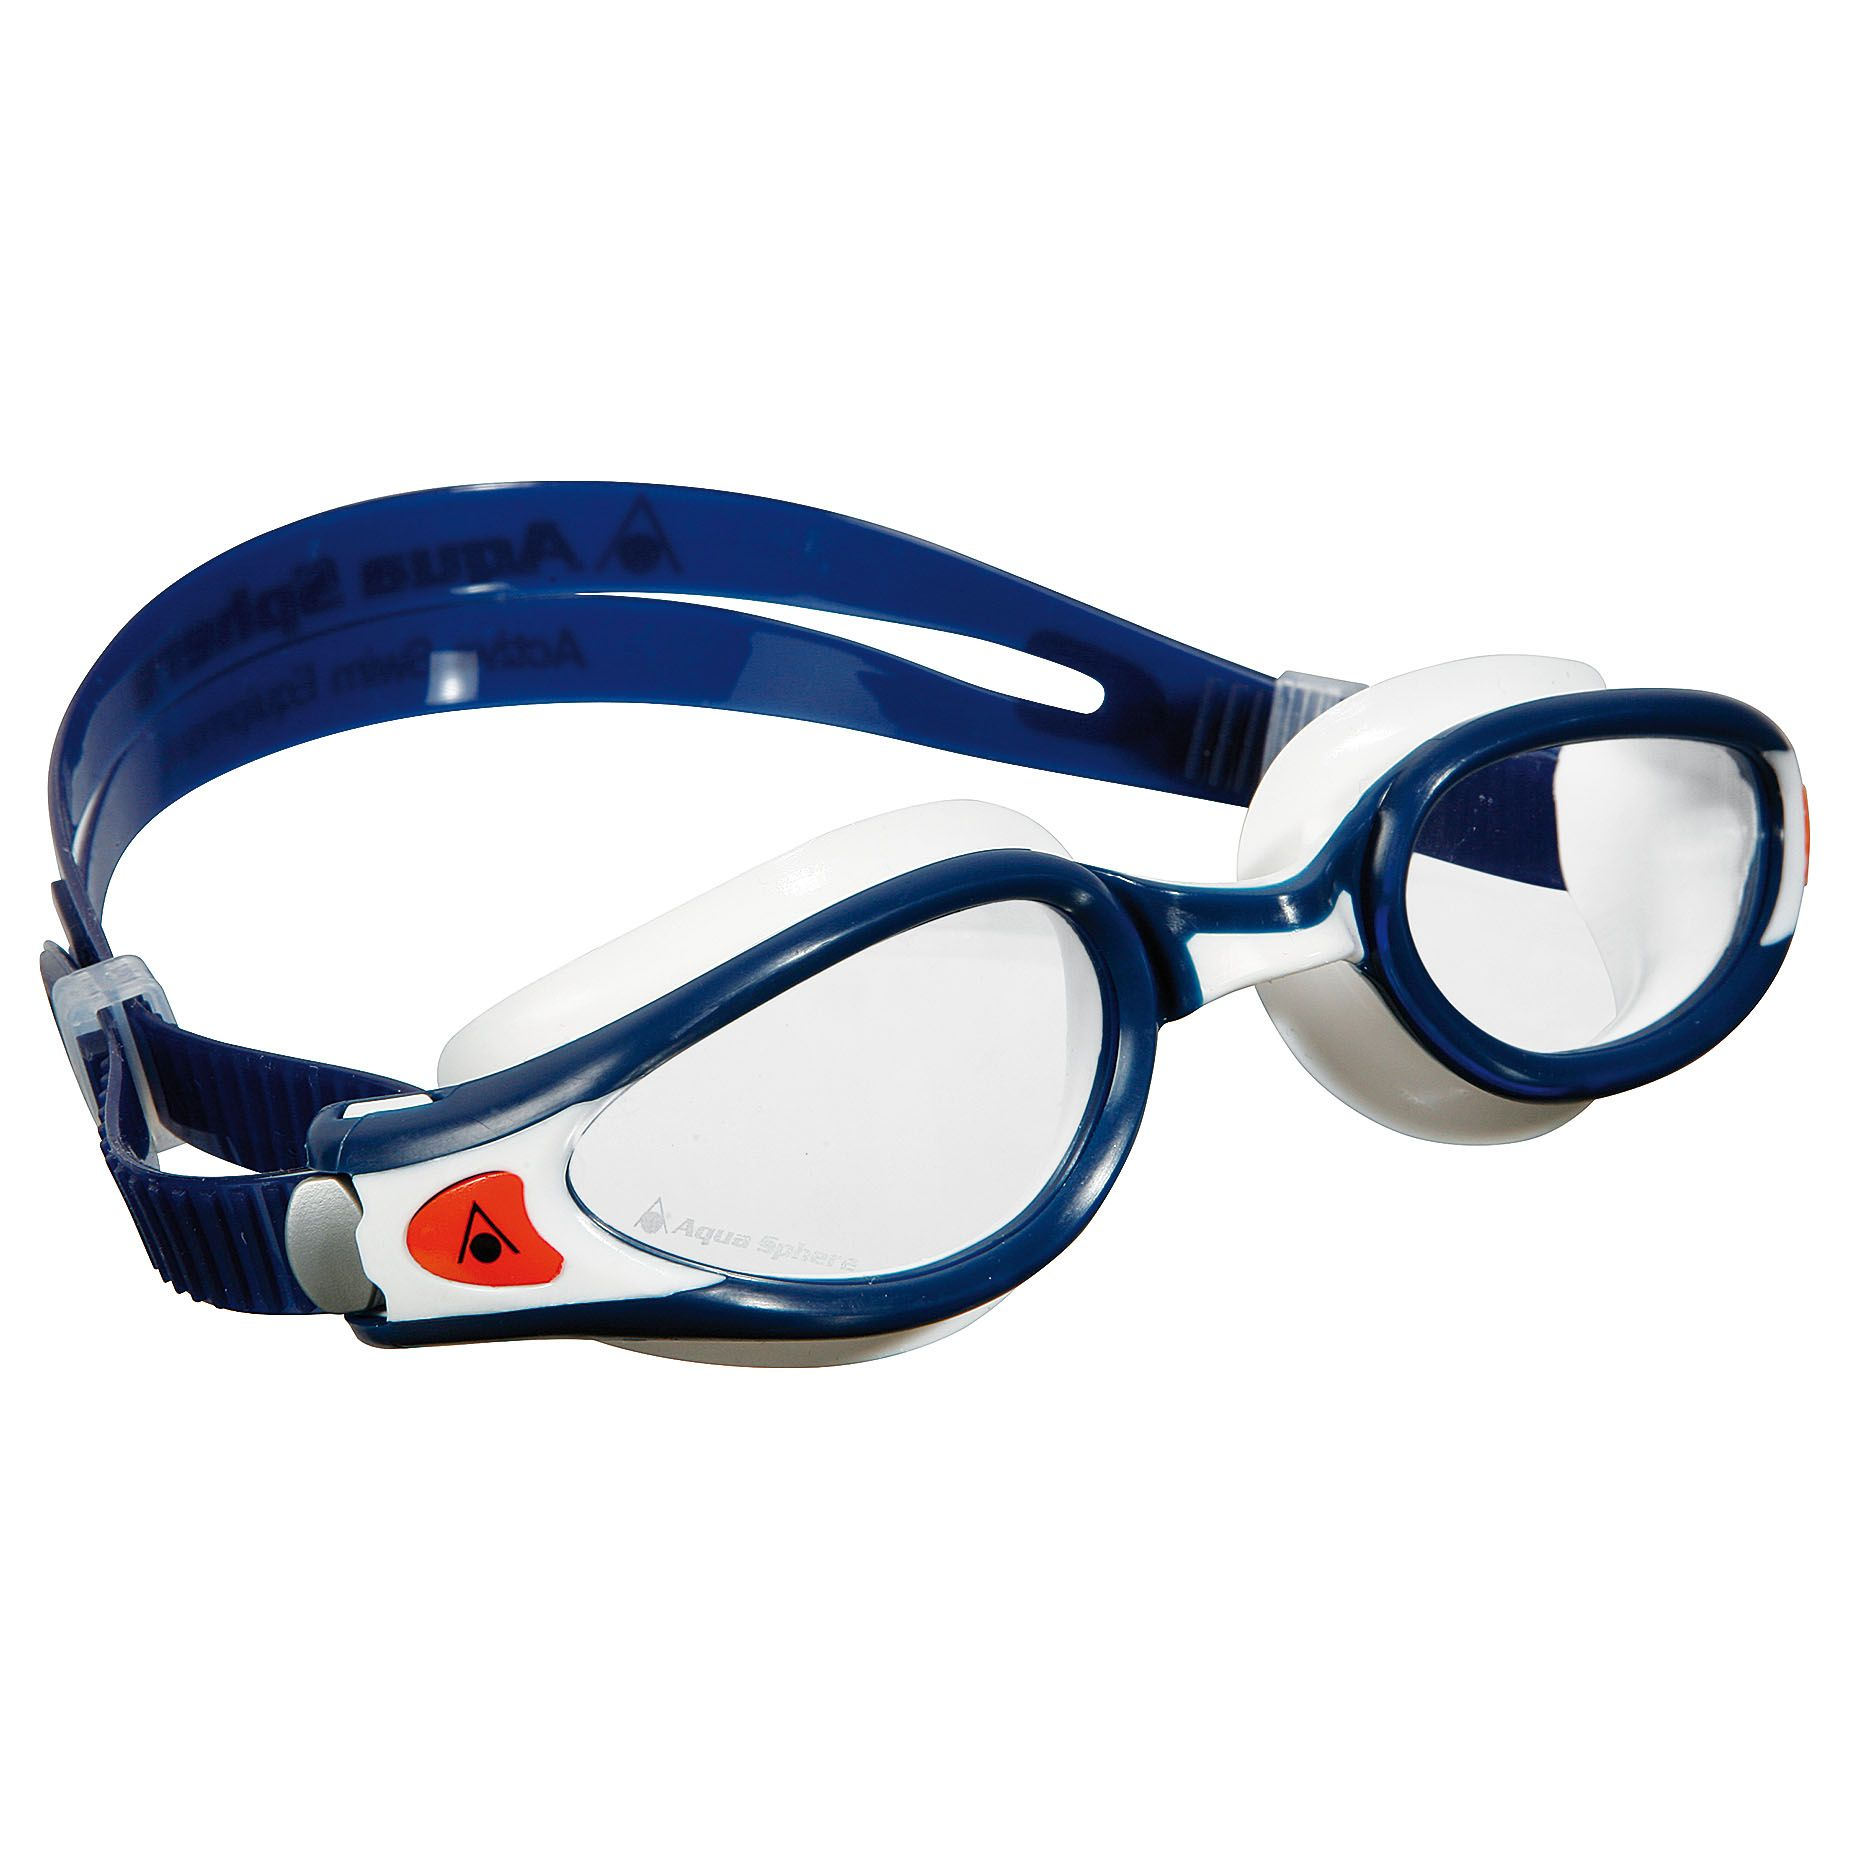 Aqua Sphere Kaiman Exo Small Fit Swimming Goggles Clear